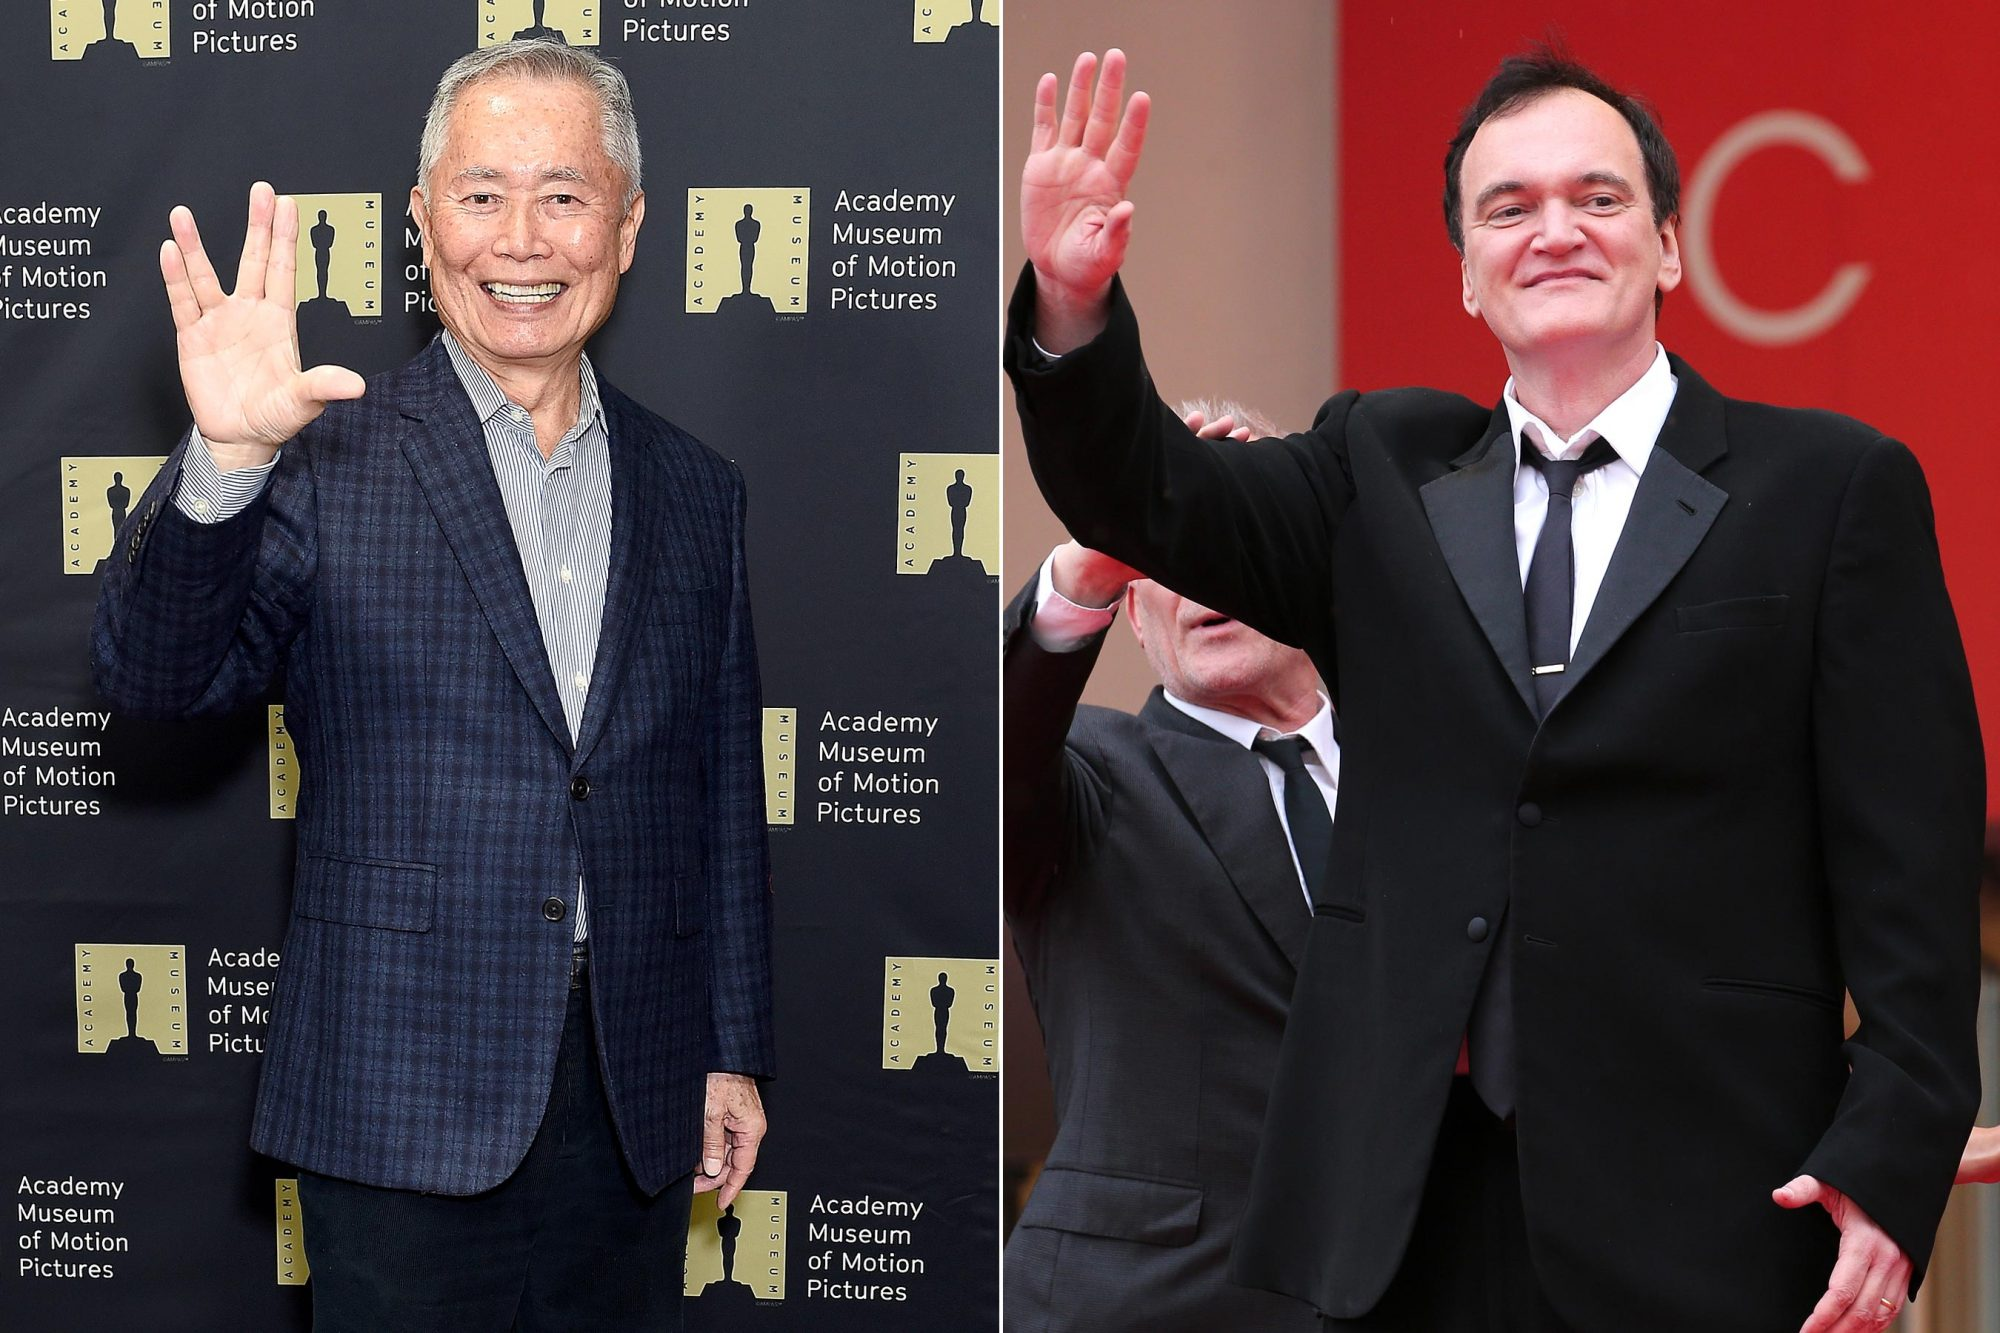 """LOS ANGELES, CA - DECEMBER 04: George Takei attends The Academy Museum Of Motion Pictures Unveiling of the Fully Restored Saban Building at Petersen Automotive Museum on December 4, 2018 in Los Angeles, California. (Photo by Gregg DeGuire/Getty Images) CANNES, FRANCE - MAY 18: Quentin Tarantino attends the screening of """"The Wild Goose Lake (Nan Fang Che Zhan De Ju Hui/ Le Lac Aux Oies Sauvages)"""" during the 72nd annual Cannes Film Festival on May 18, 2019 in Cannes, France. (Photo by Gisela Schober/Getty Images)"""